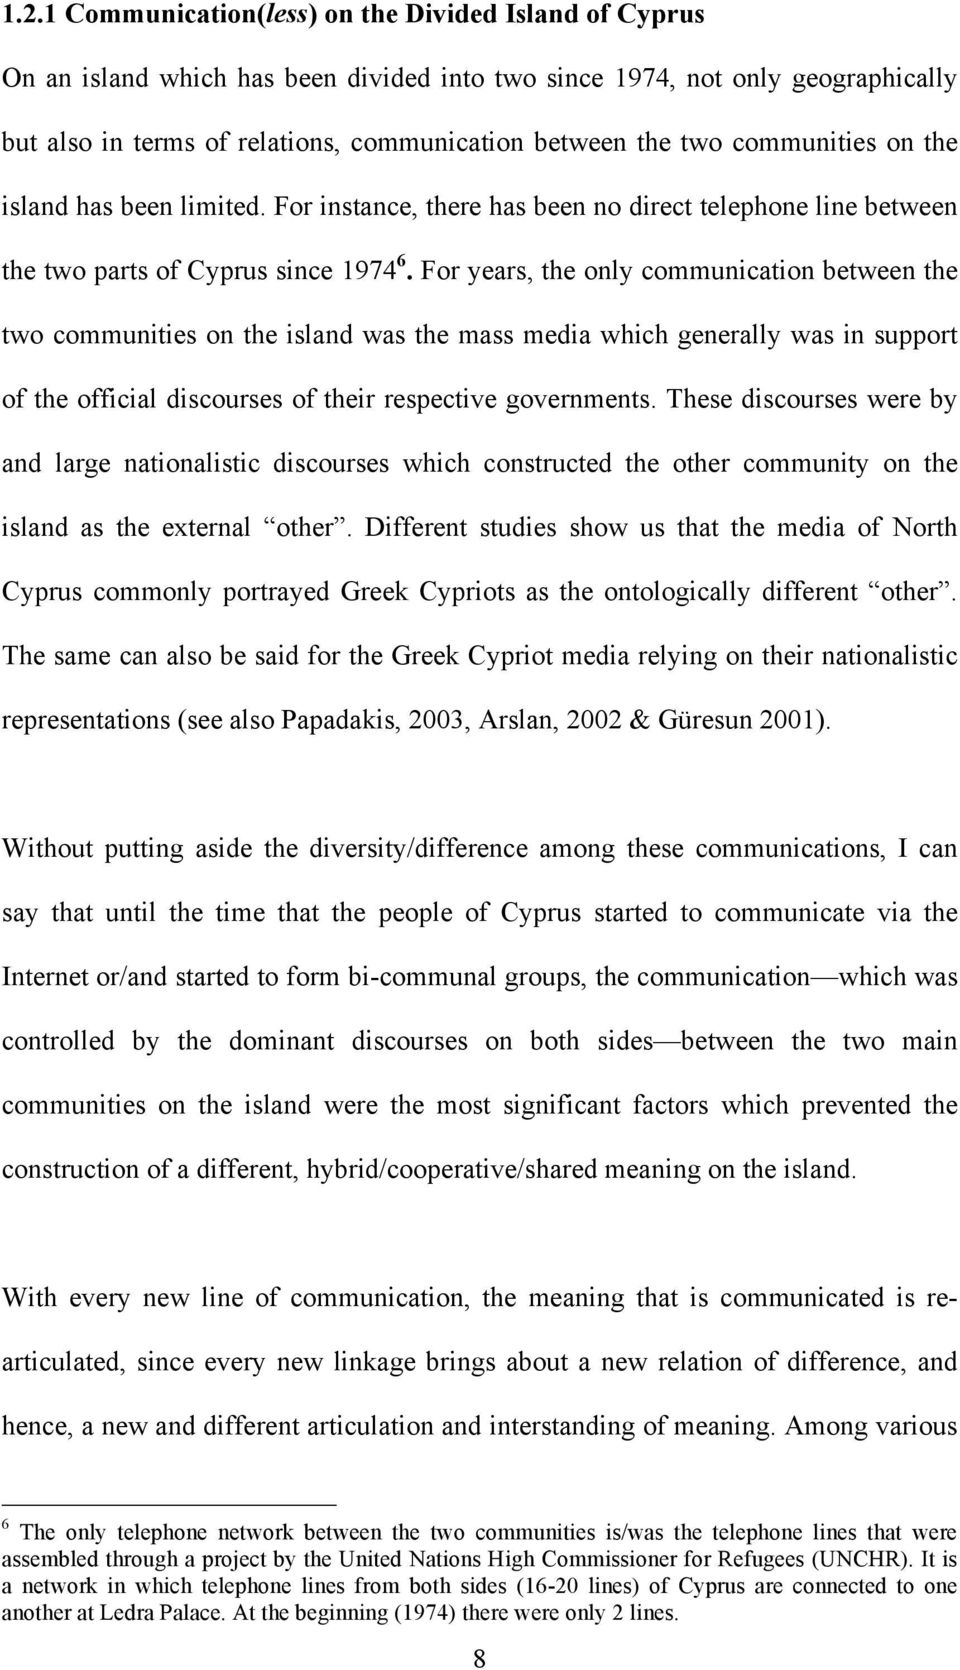 For years, the only communication between the two communities on the island was the mass media which generally was in support of the official discourses of their respective governments.